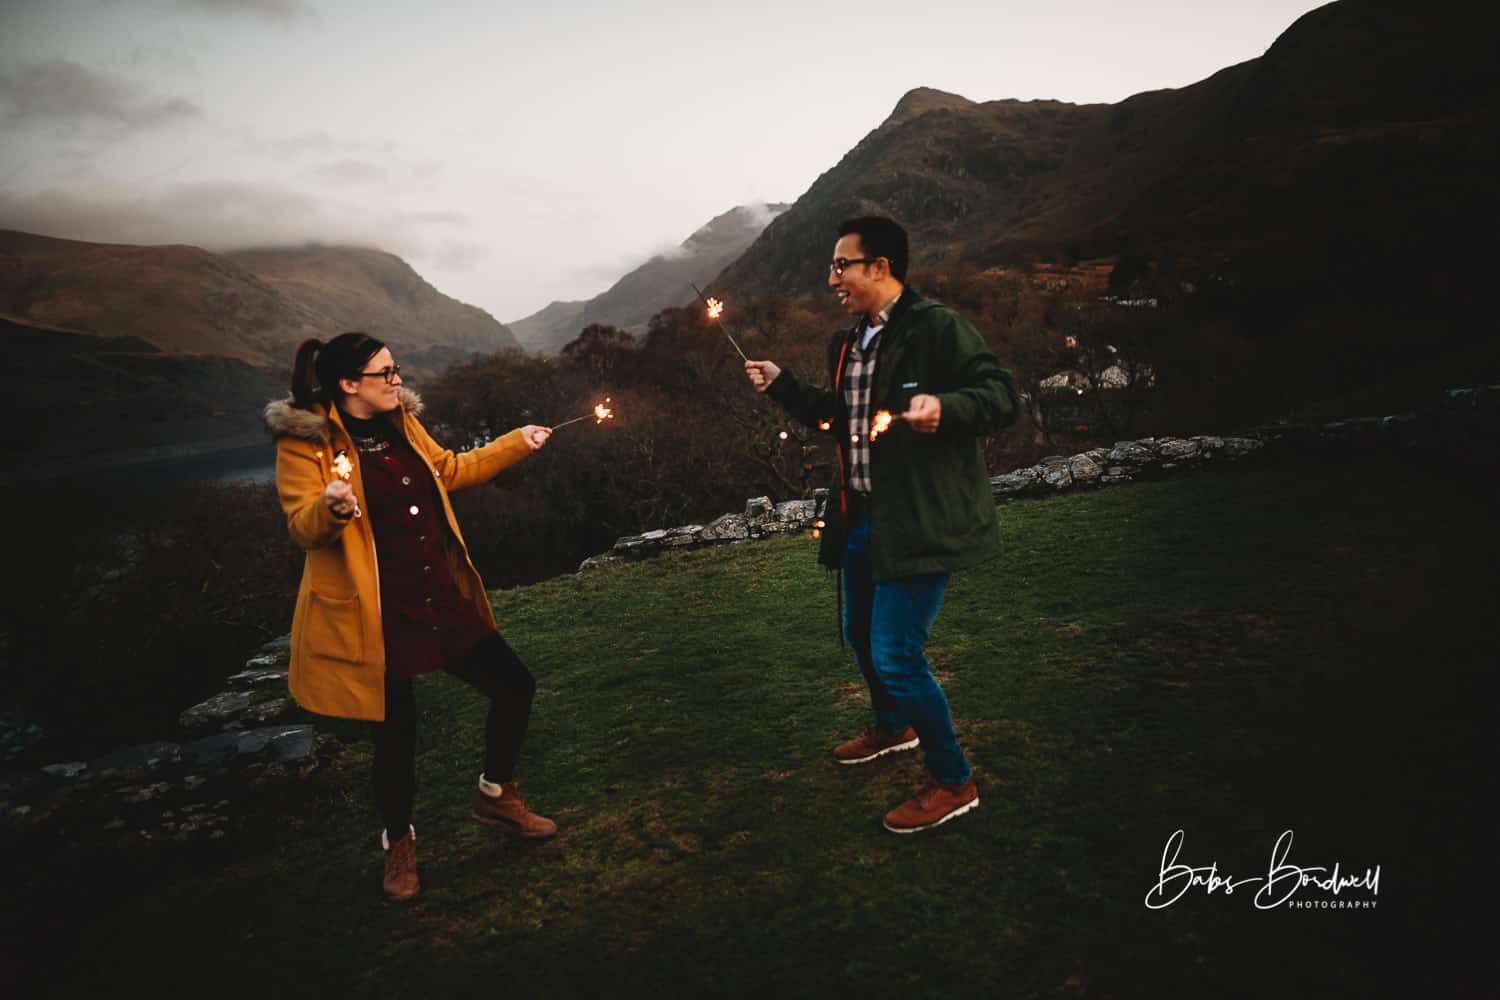 couple having fun with sparklers against a mountainous Snowdonia backdrop